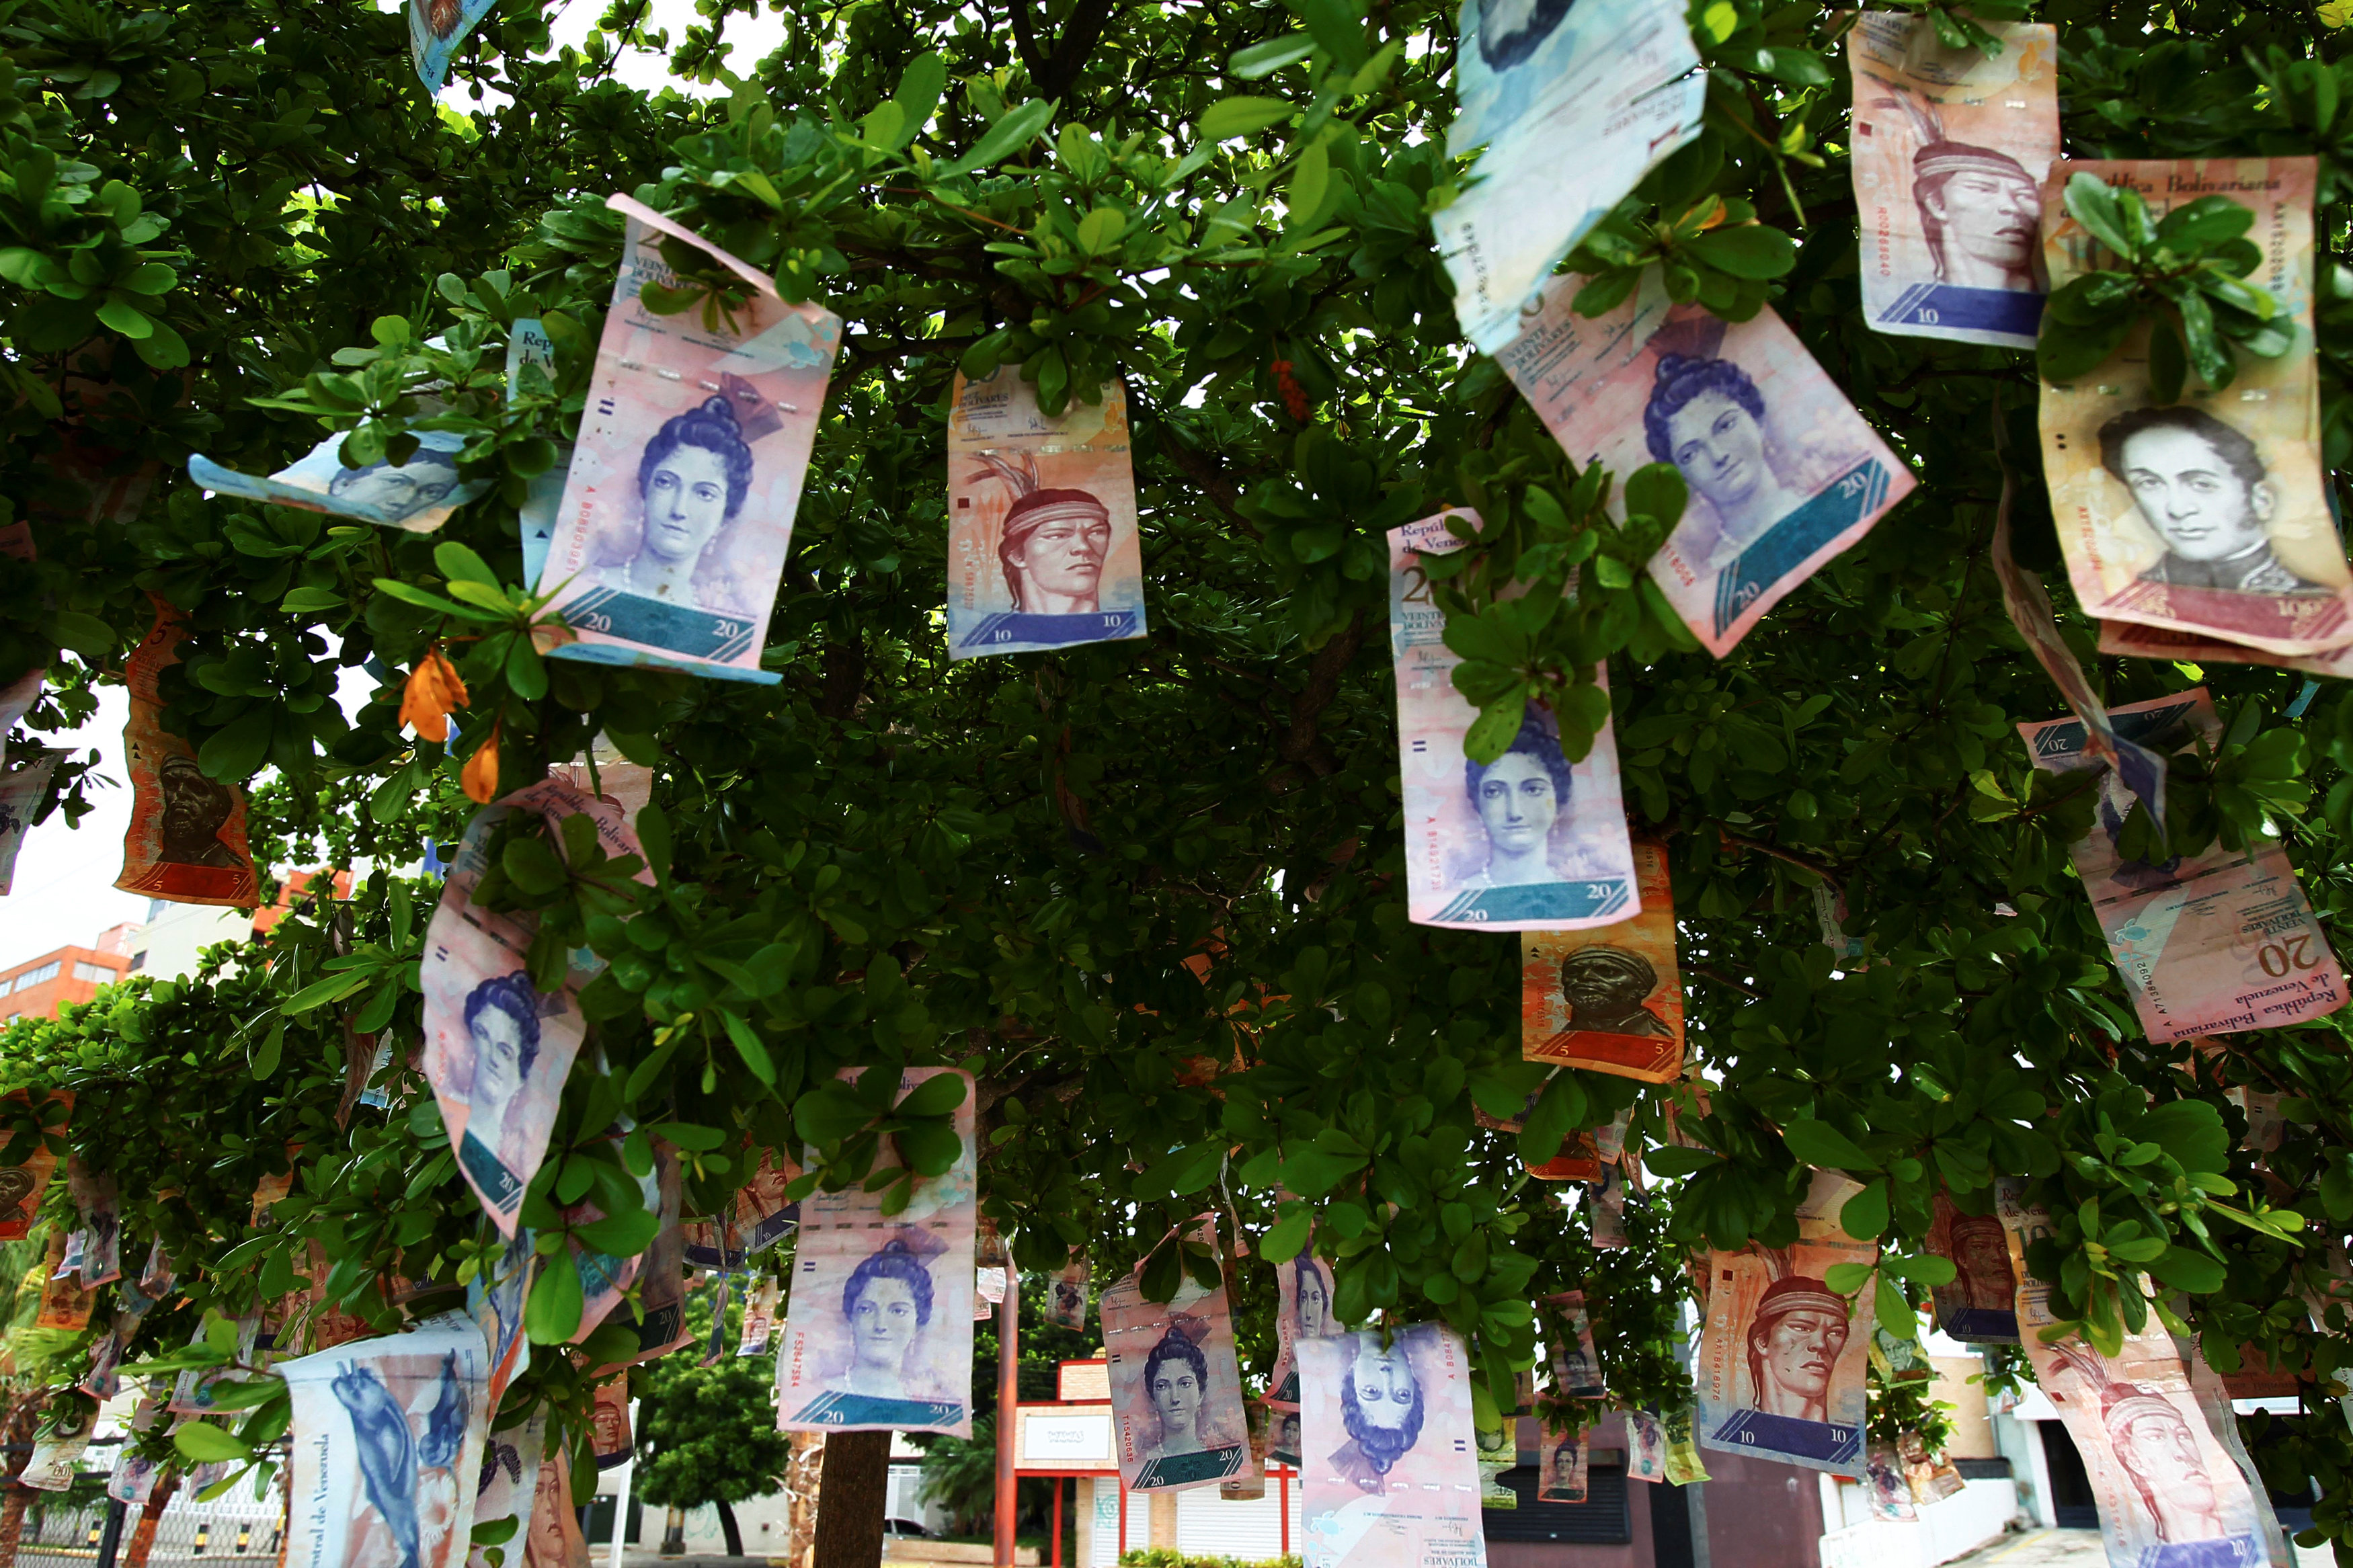 Bolivar notes a seen hanging in a tree at a street in Maracaibo, Venezuela November 11, 2017.